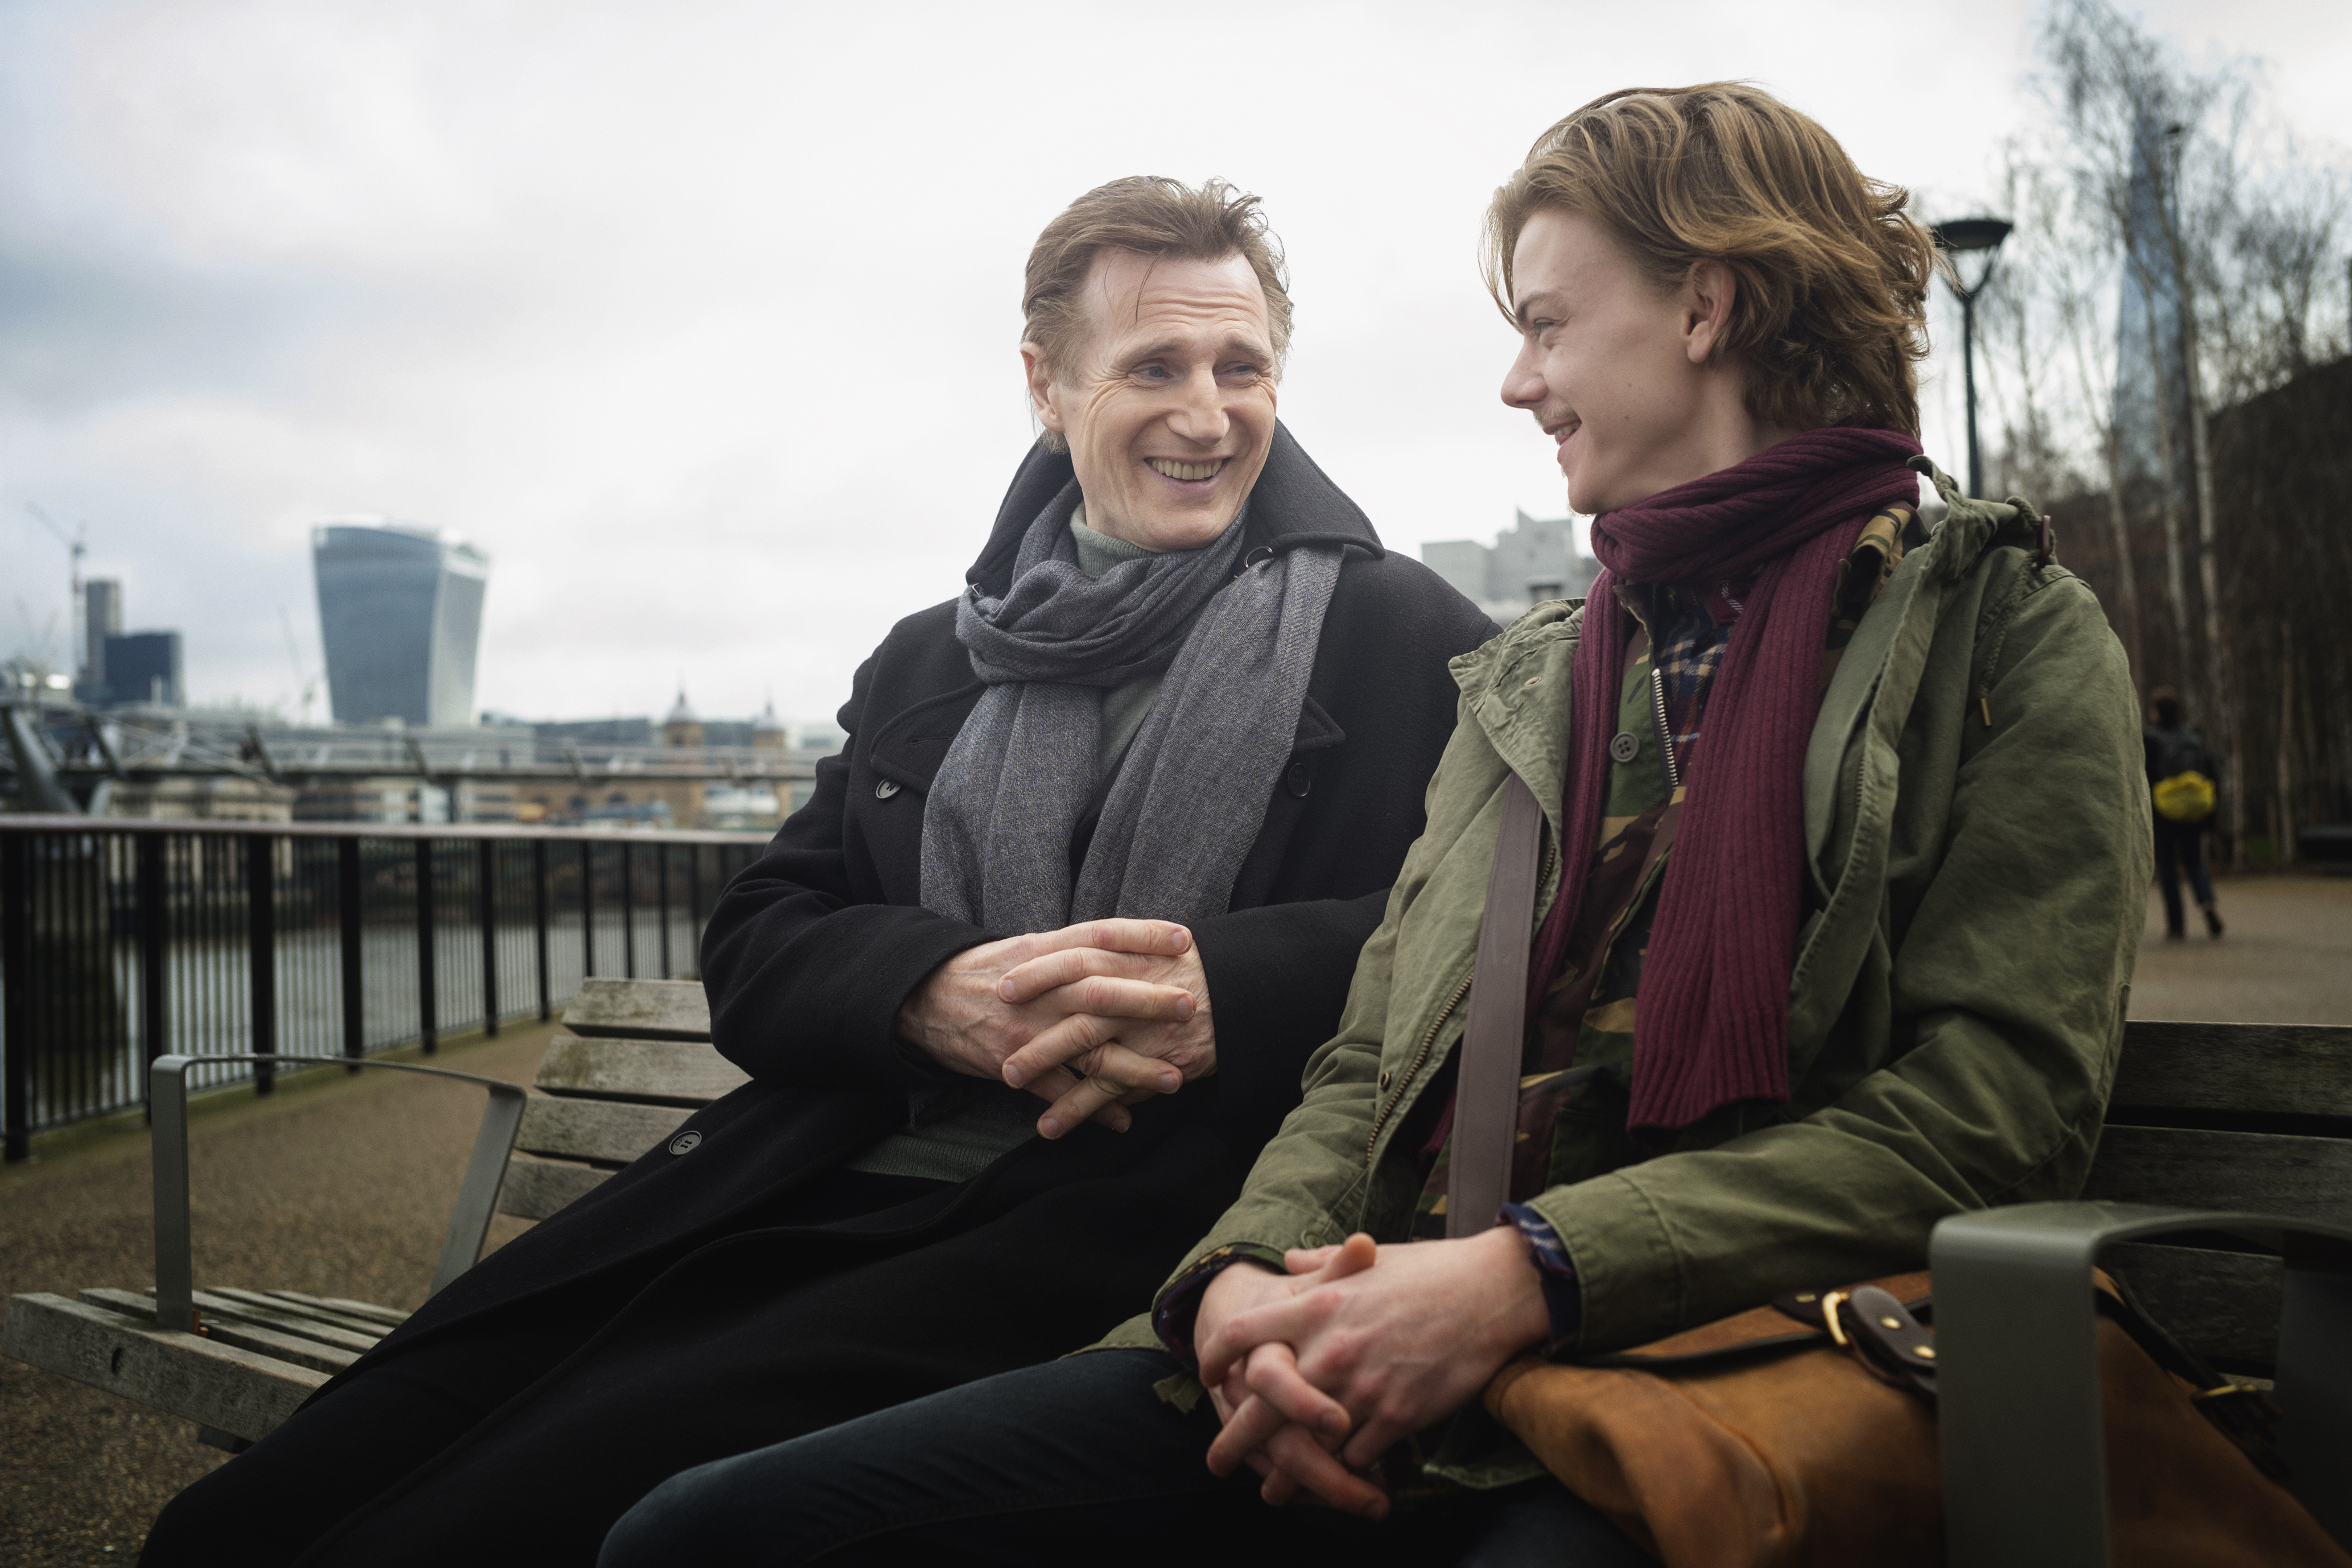 In this handout image provided by Comic Relief, Liam Neeson as Daniel and Thomas Brodie-Sangster as Sam record a film for 'Red Nose Day Actually' on Febuary 16, 2017 in London. (Photo by Sarah M Lee/Comic Relief via Getty Images)